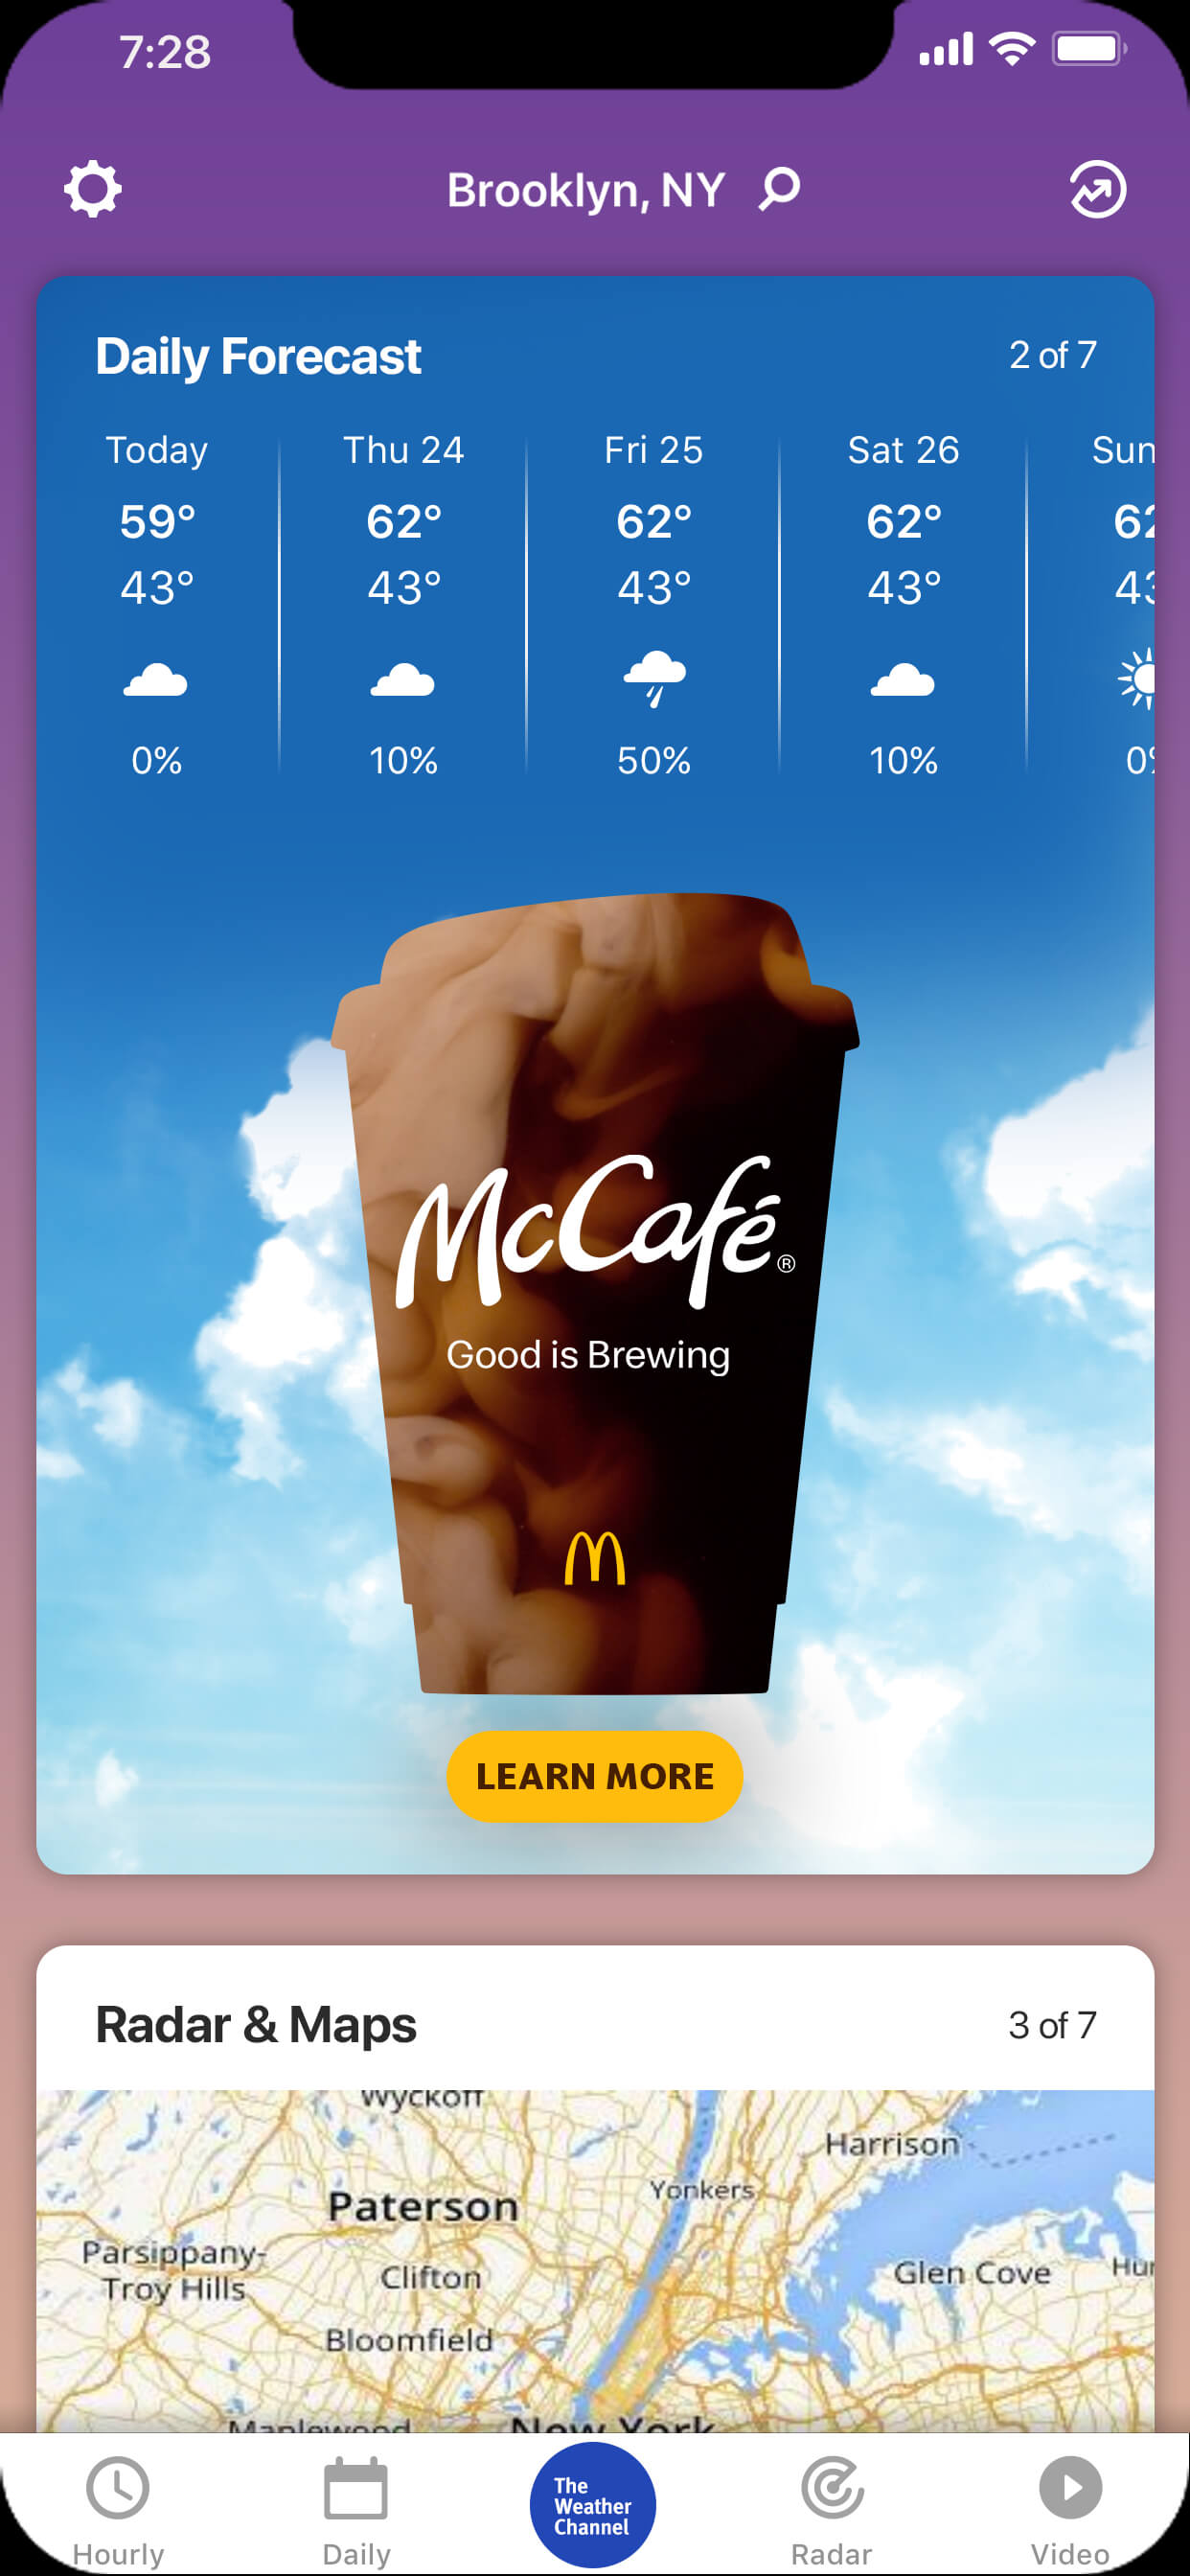 McCafe_IF_McCade_IF_003_cloudy_day